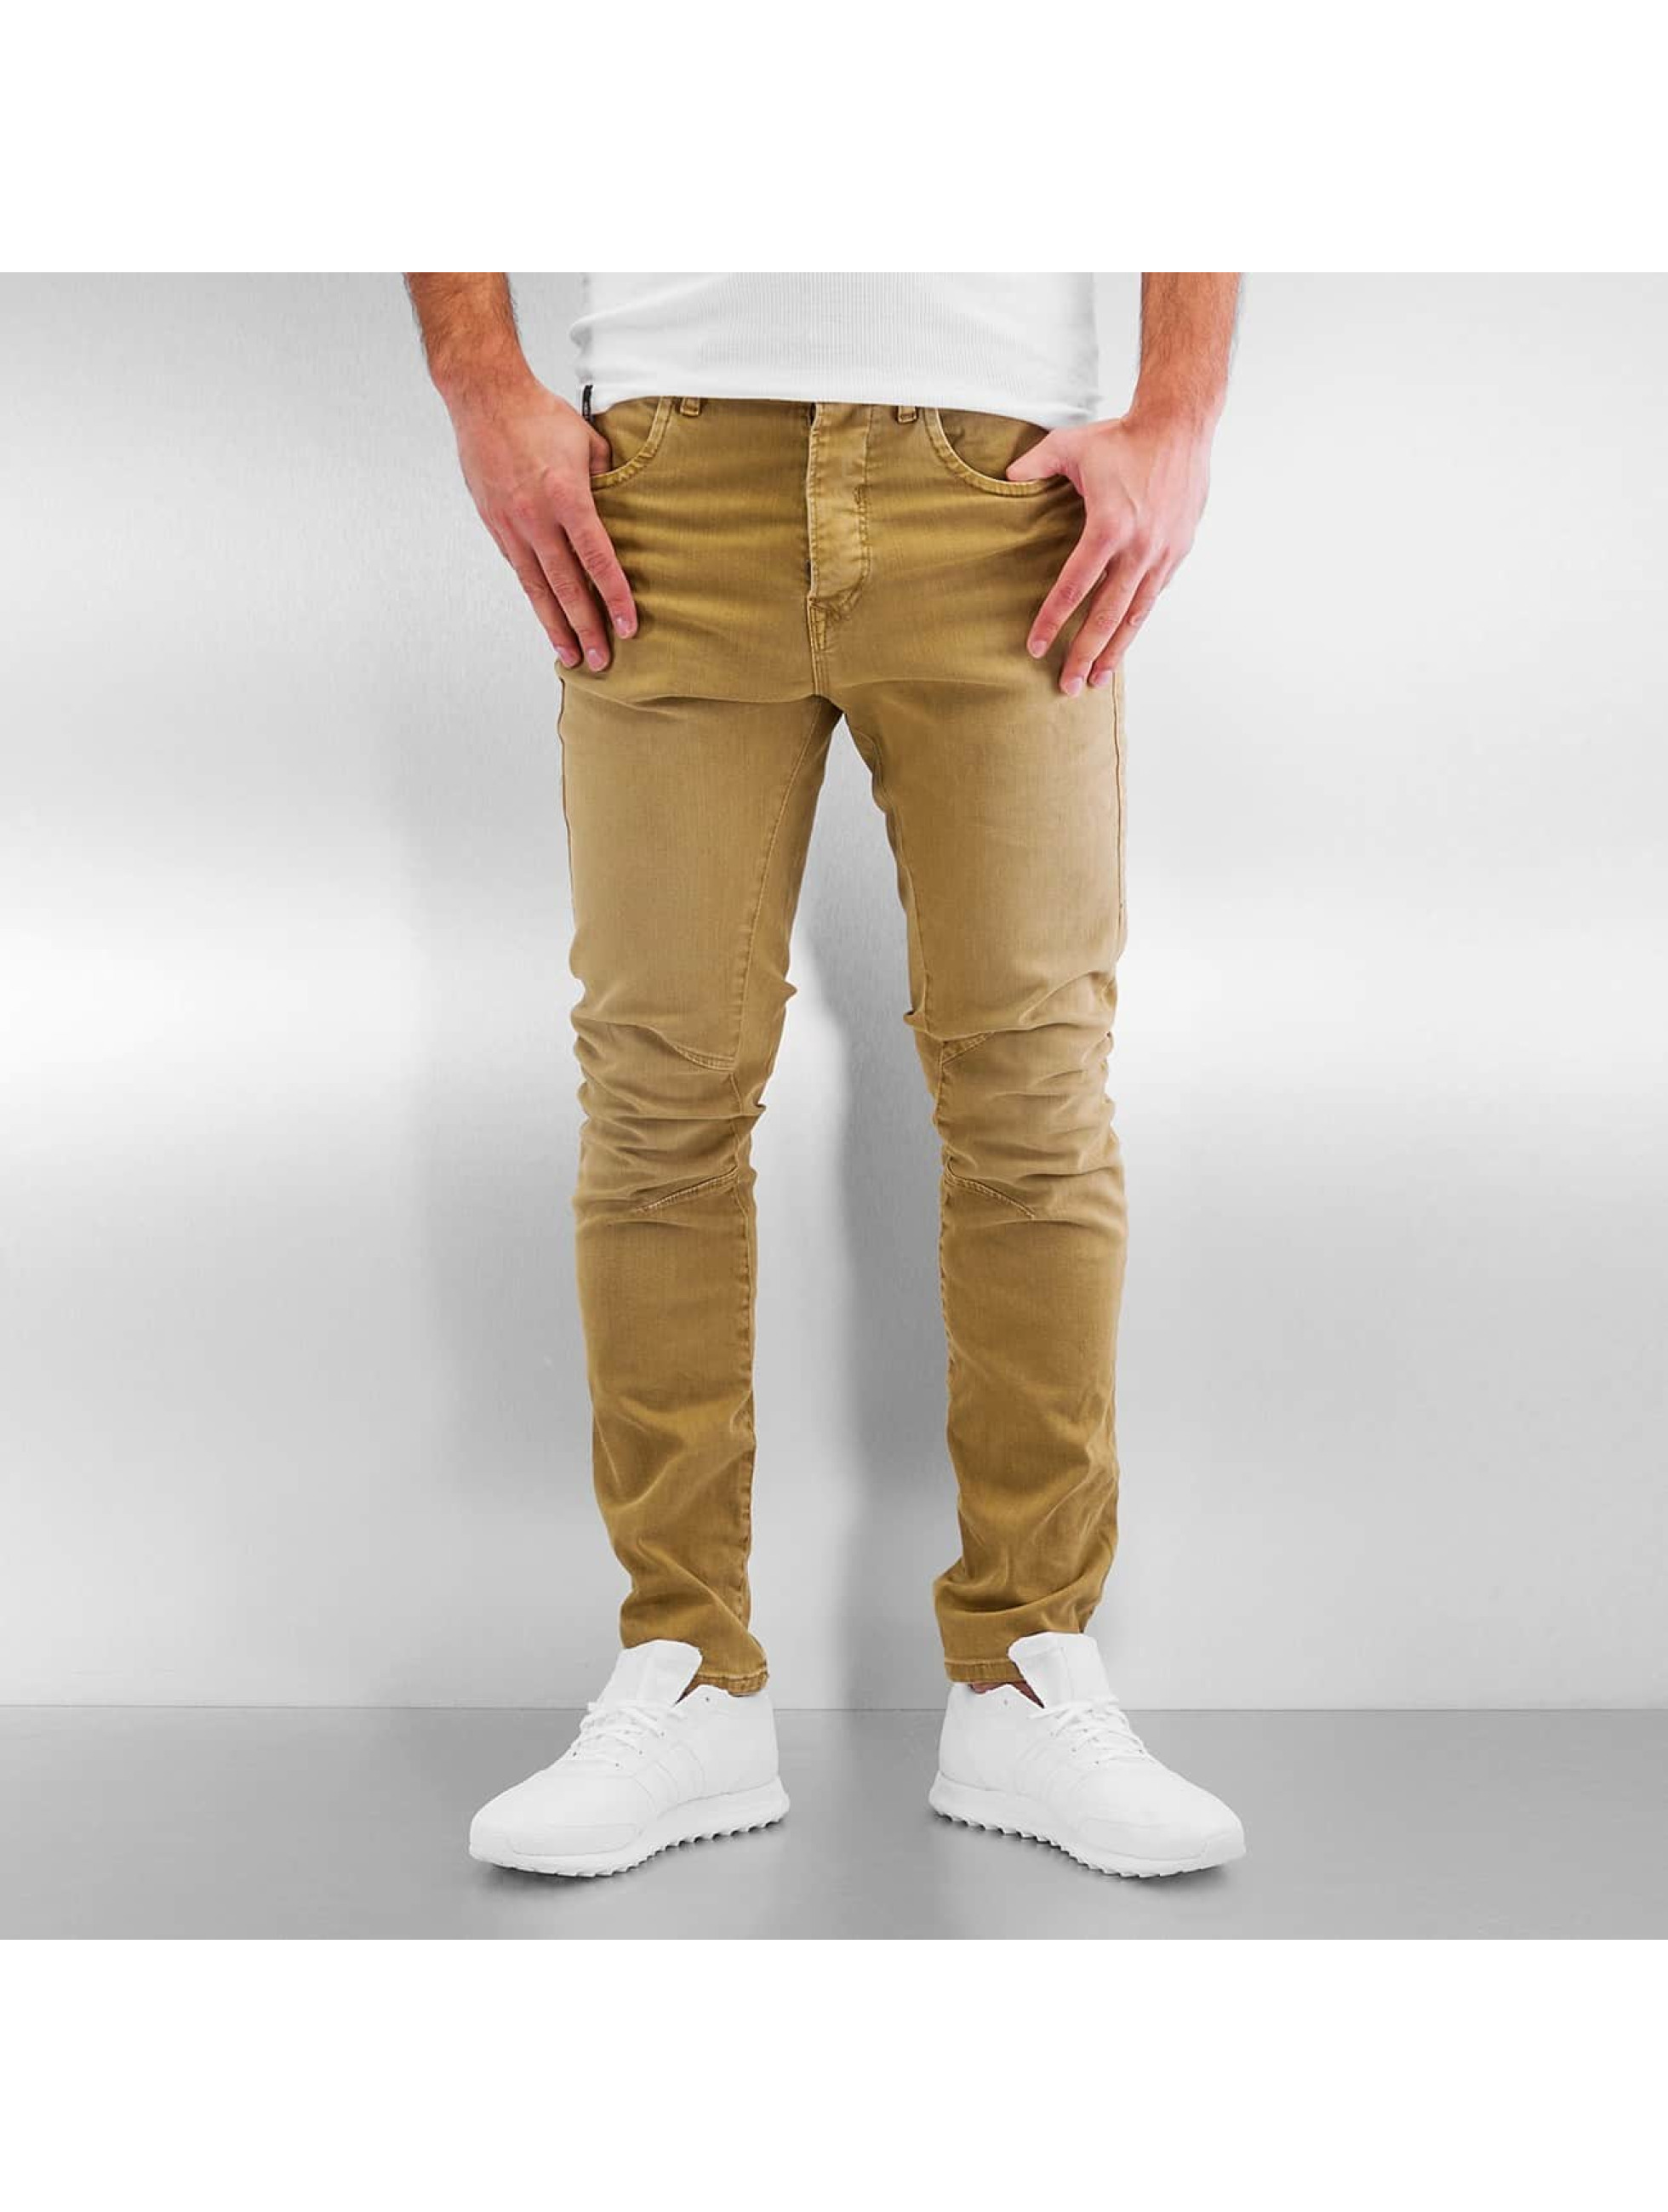 Jack & Jones Slim Fit Jeans jjIluke jjEcho JOS 999 brown